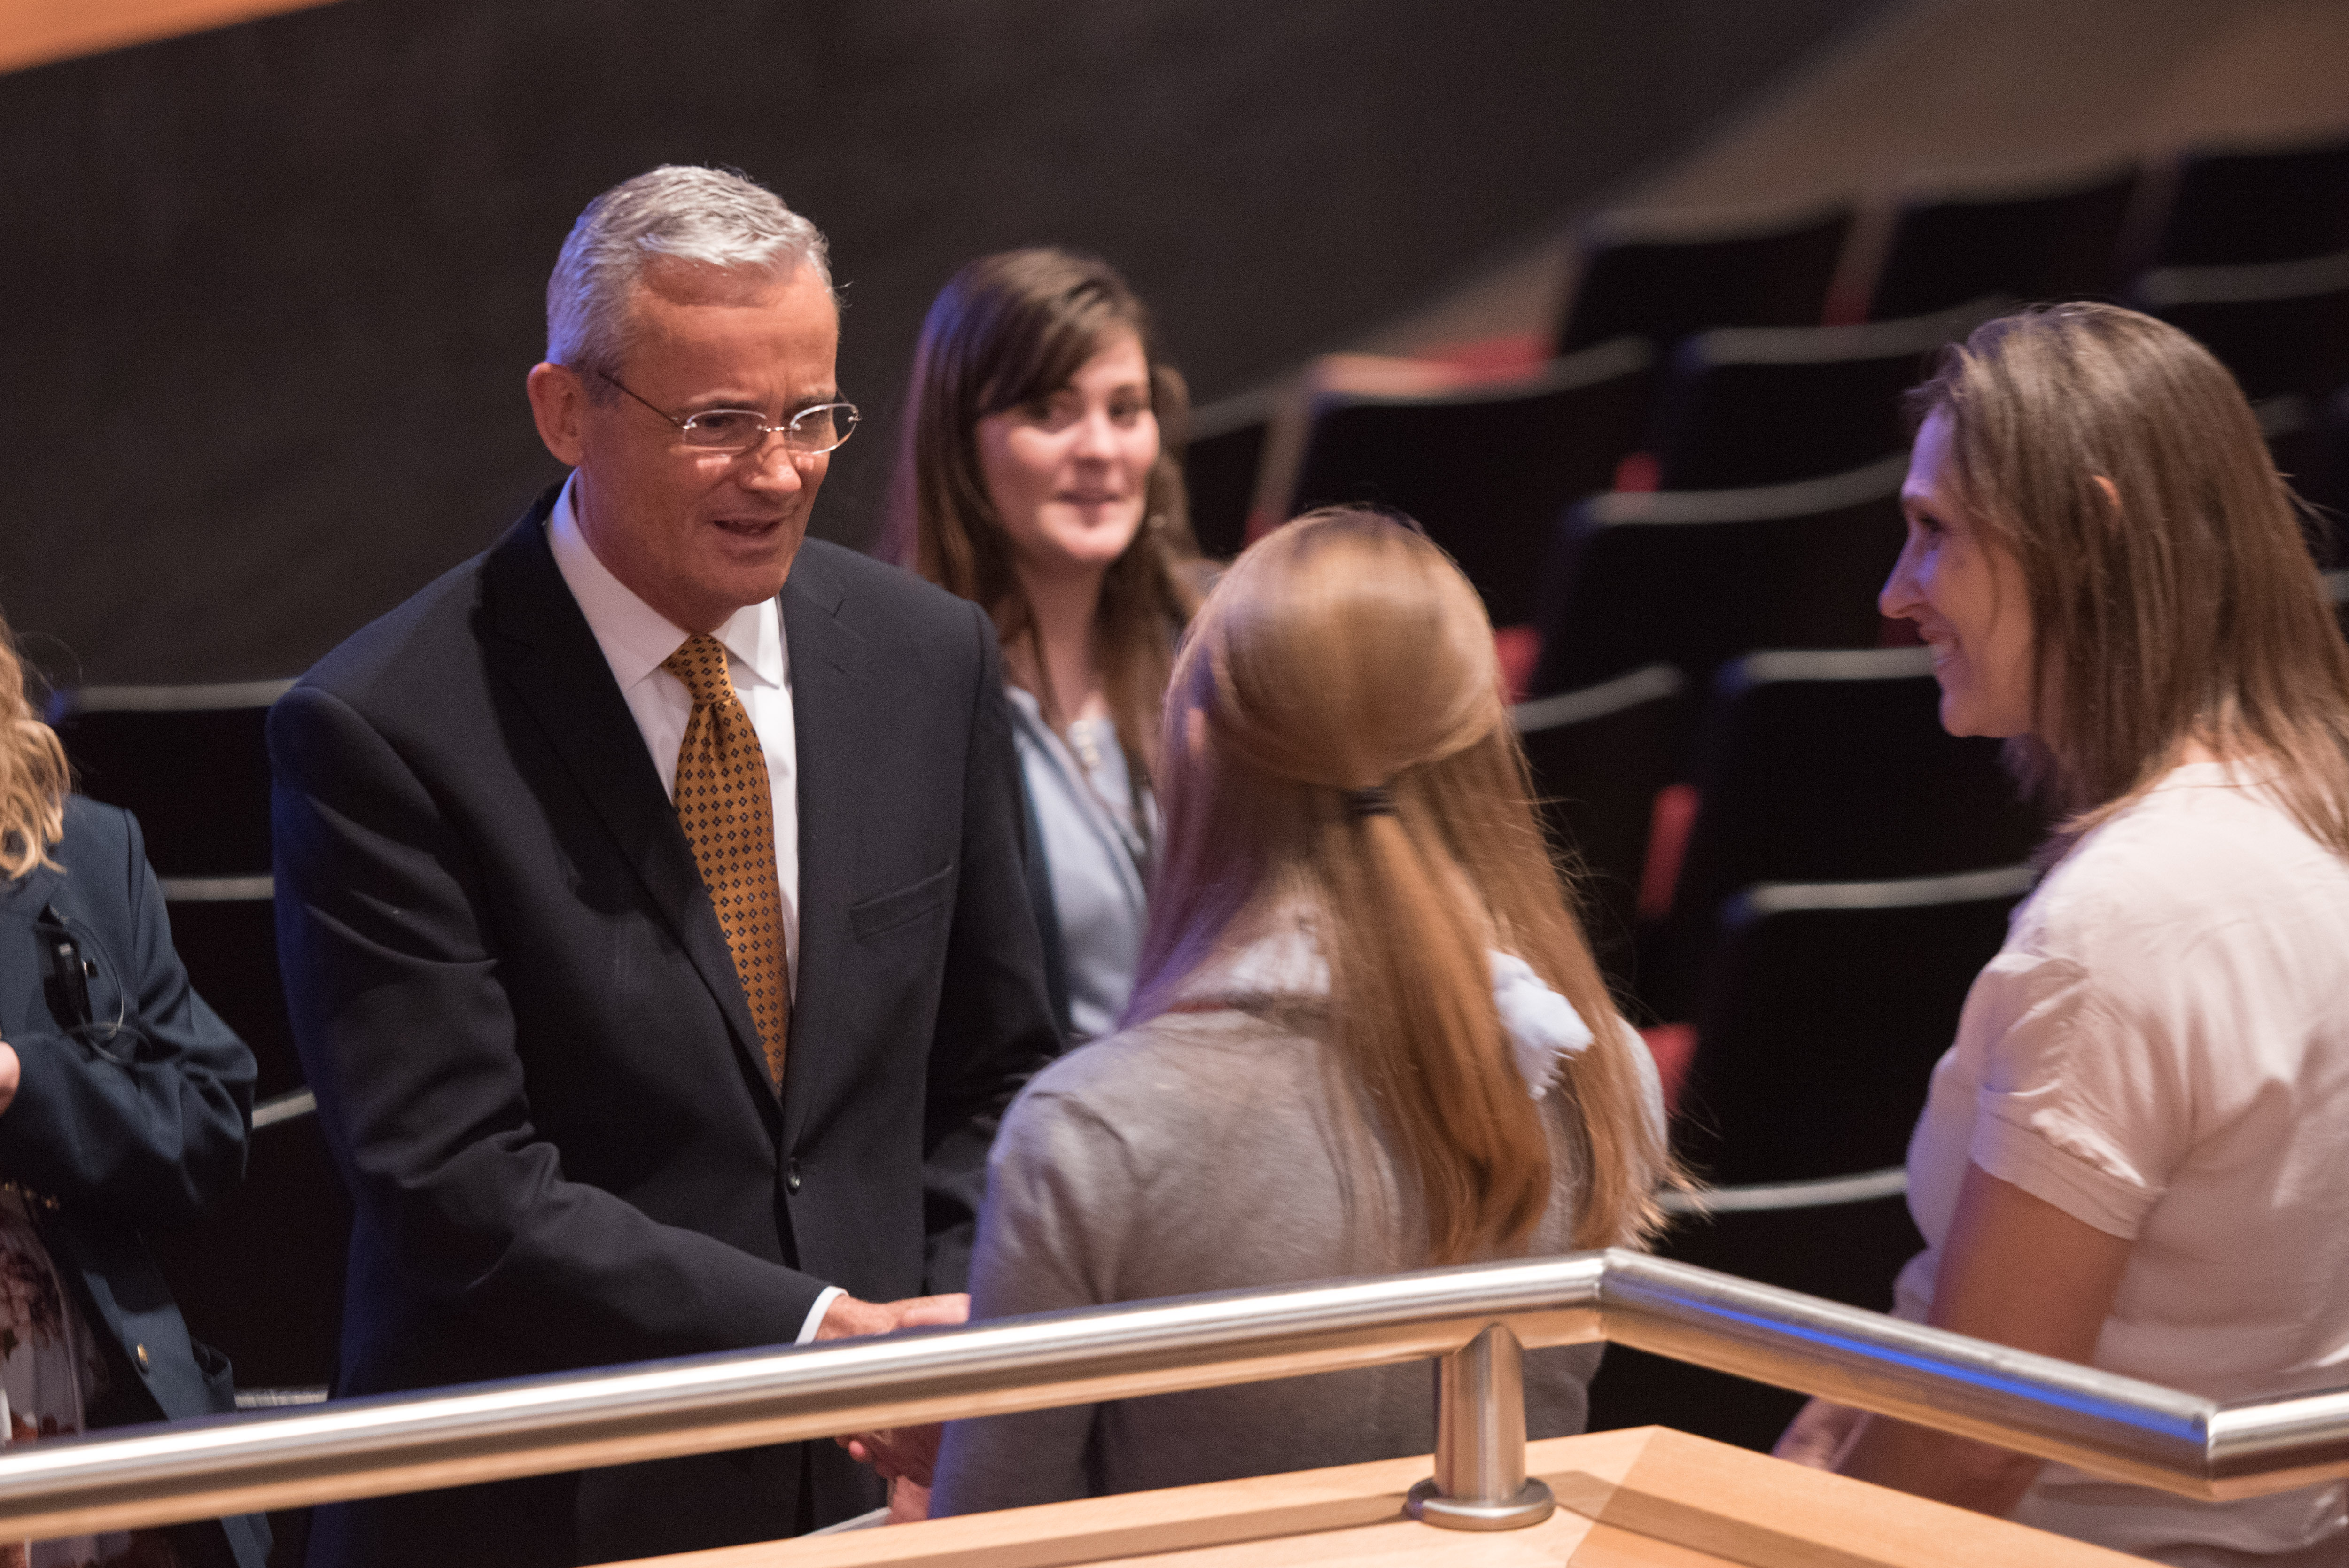 Elder Patrick Kearon of the Presidency of the Seventy greets devotional attendees following the Worldwide Devotional for Young Adults held in the BYU-Idaho Center in Rexburg, Idaho, on May 6, 2018.